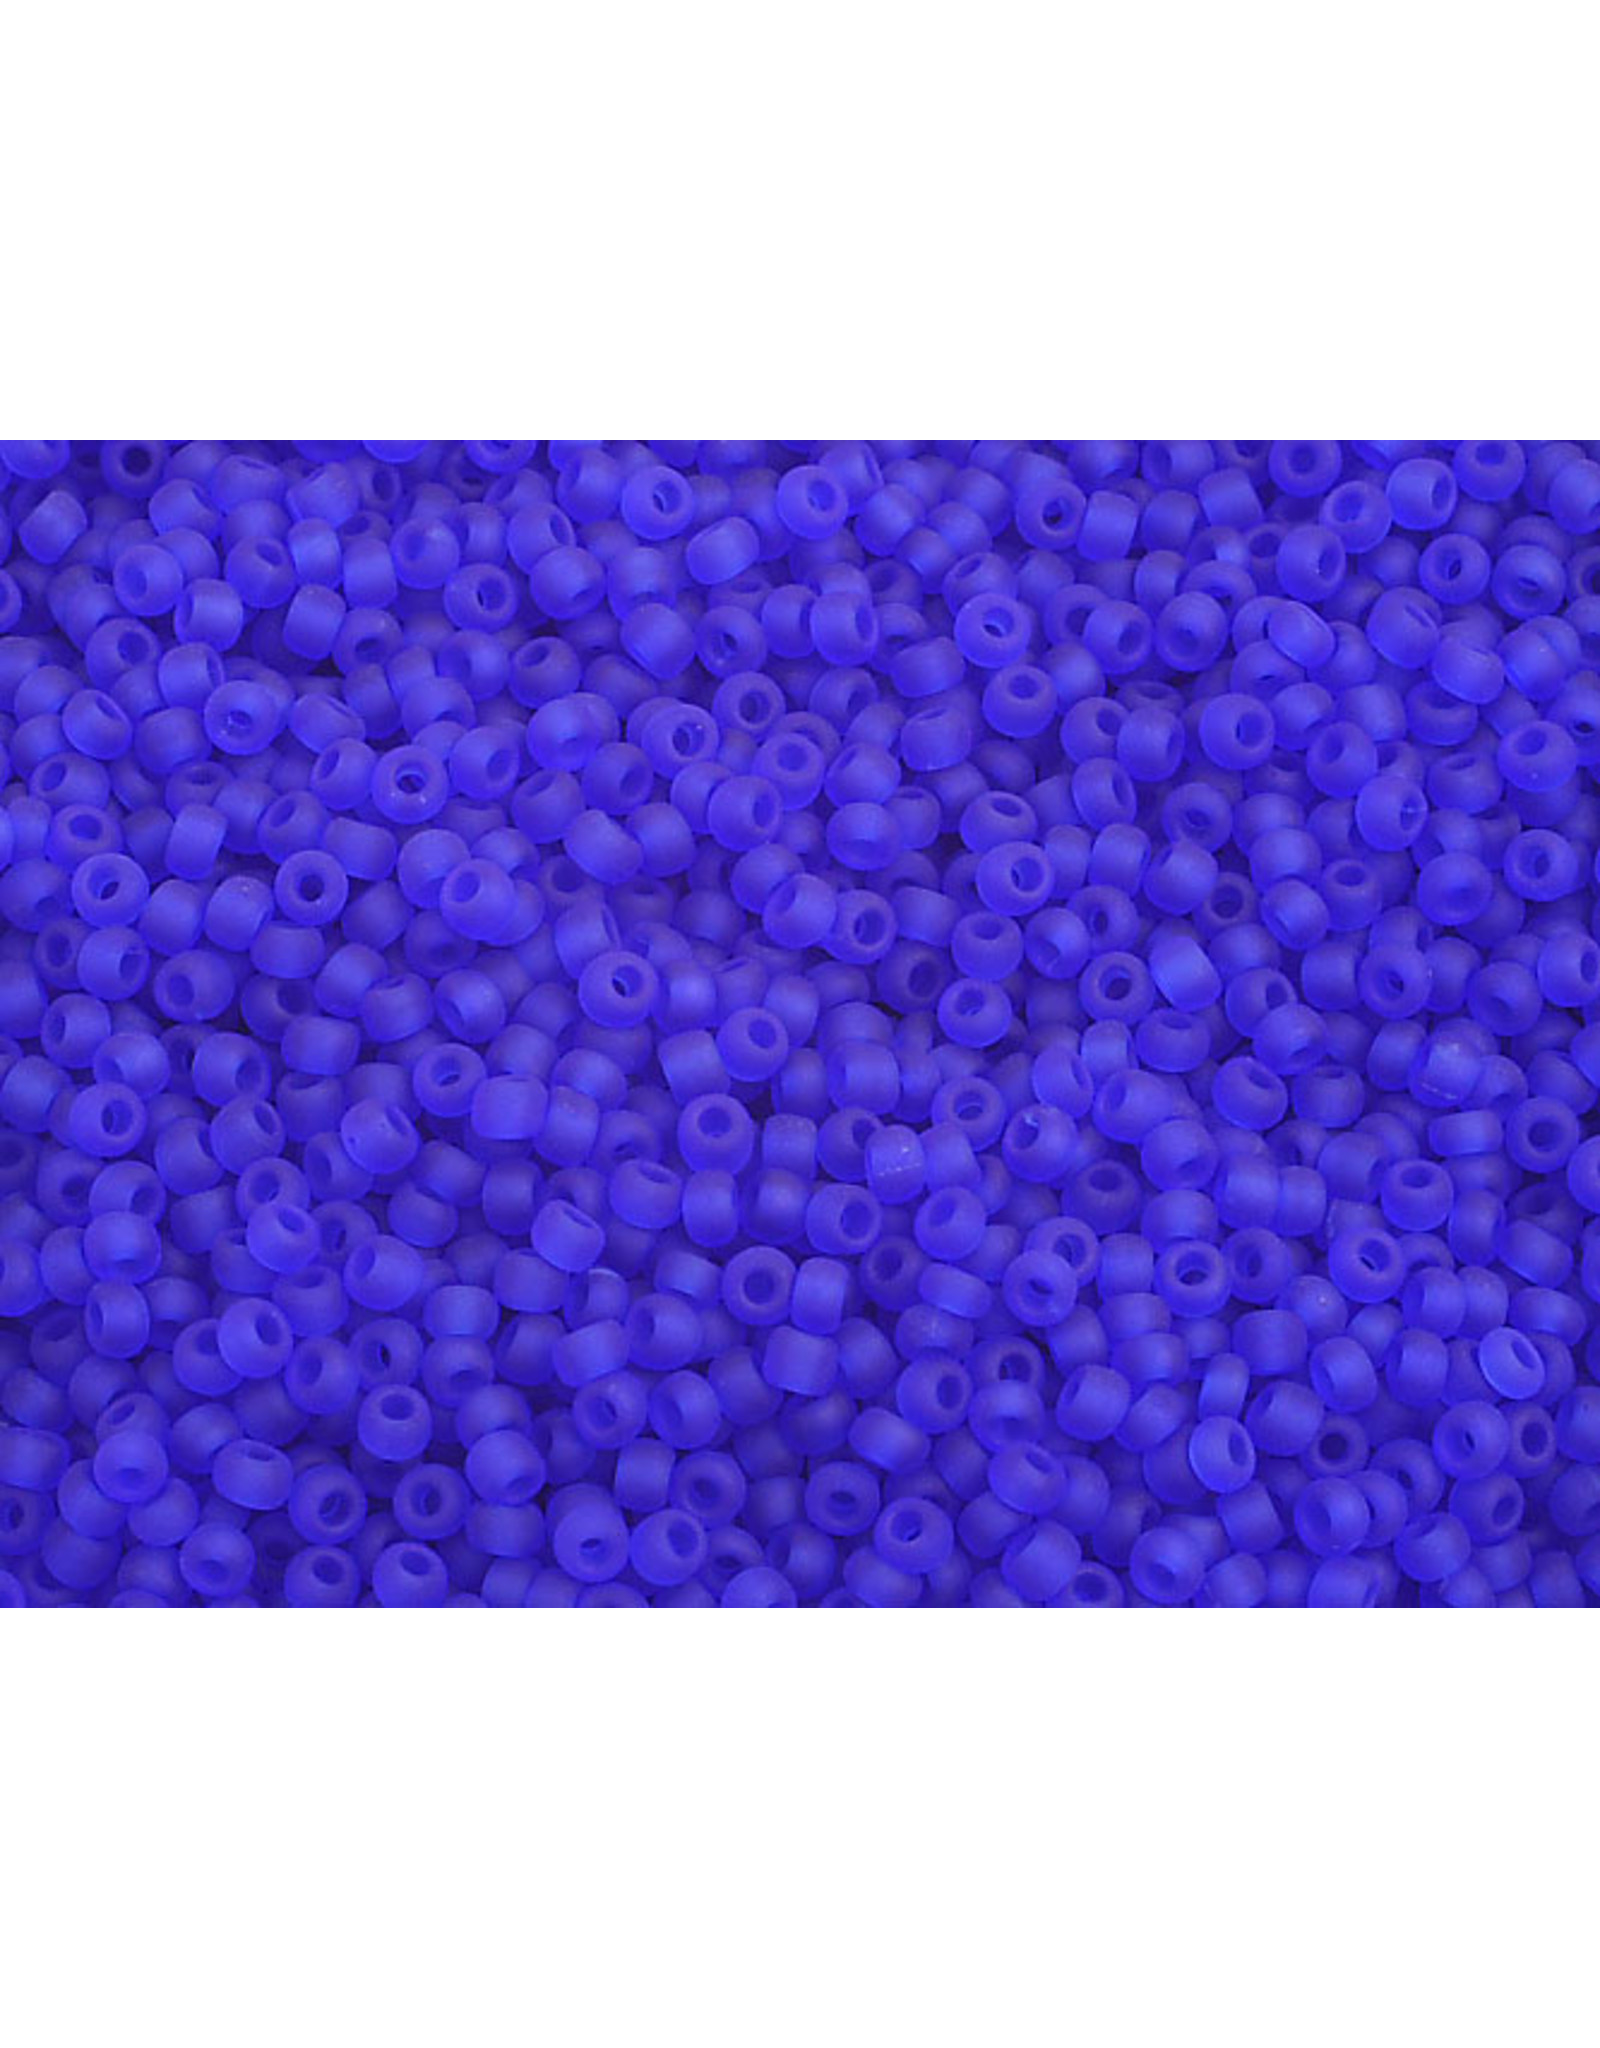 Czech 2324 10  Seed 20g  Transparent Dark Blue Matte